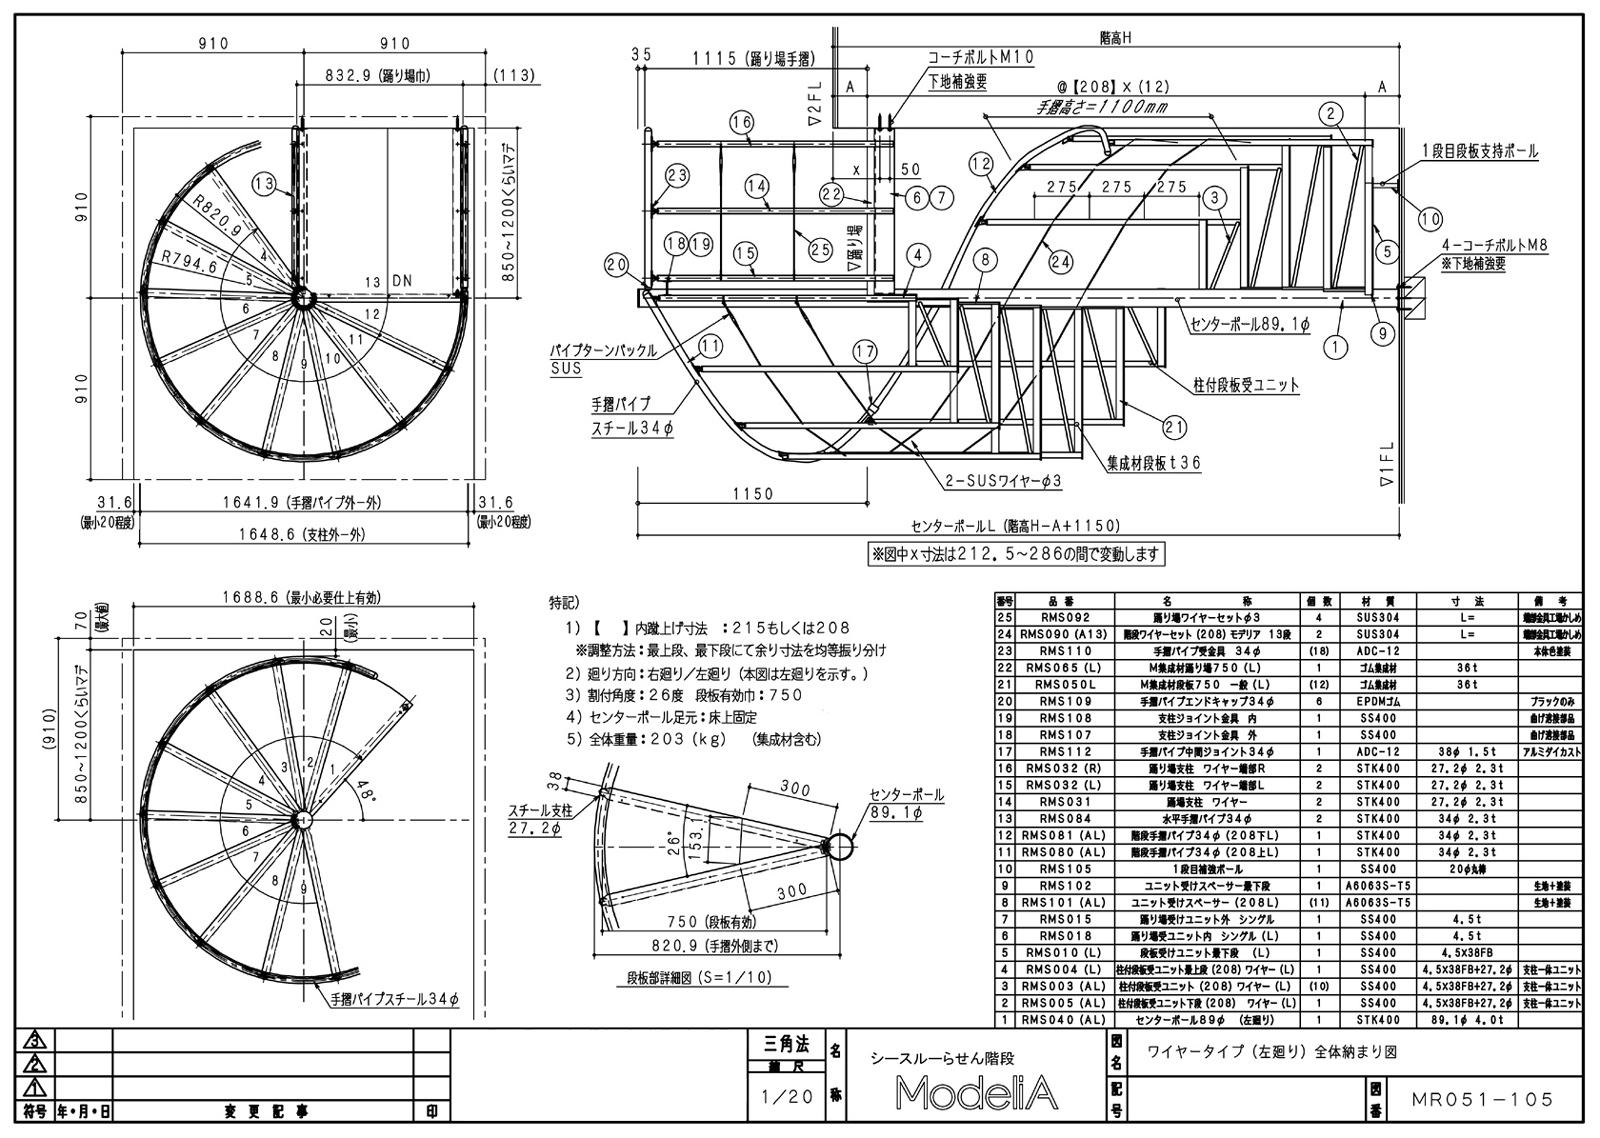 Indoor Steel Spiral Staircase モデリアワイヤー Fire Resistant Structure  Specifications